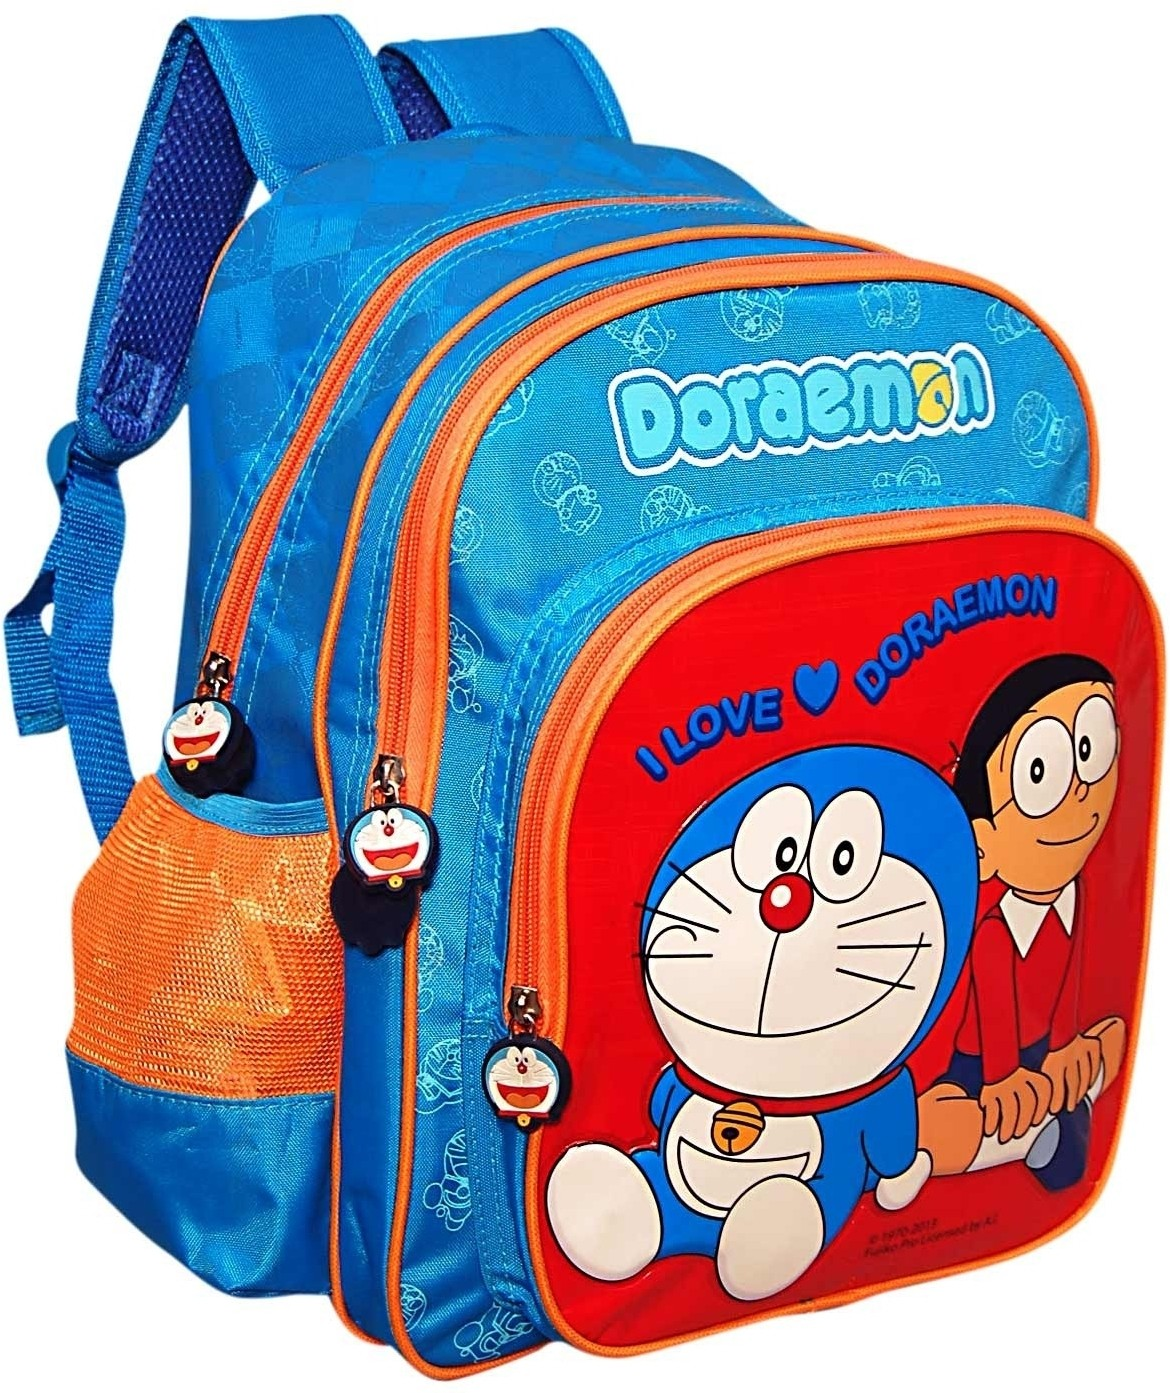 Gym Bag Flipkart: Doraemon Shoulder Bag - Shoulder Bag